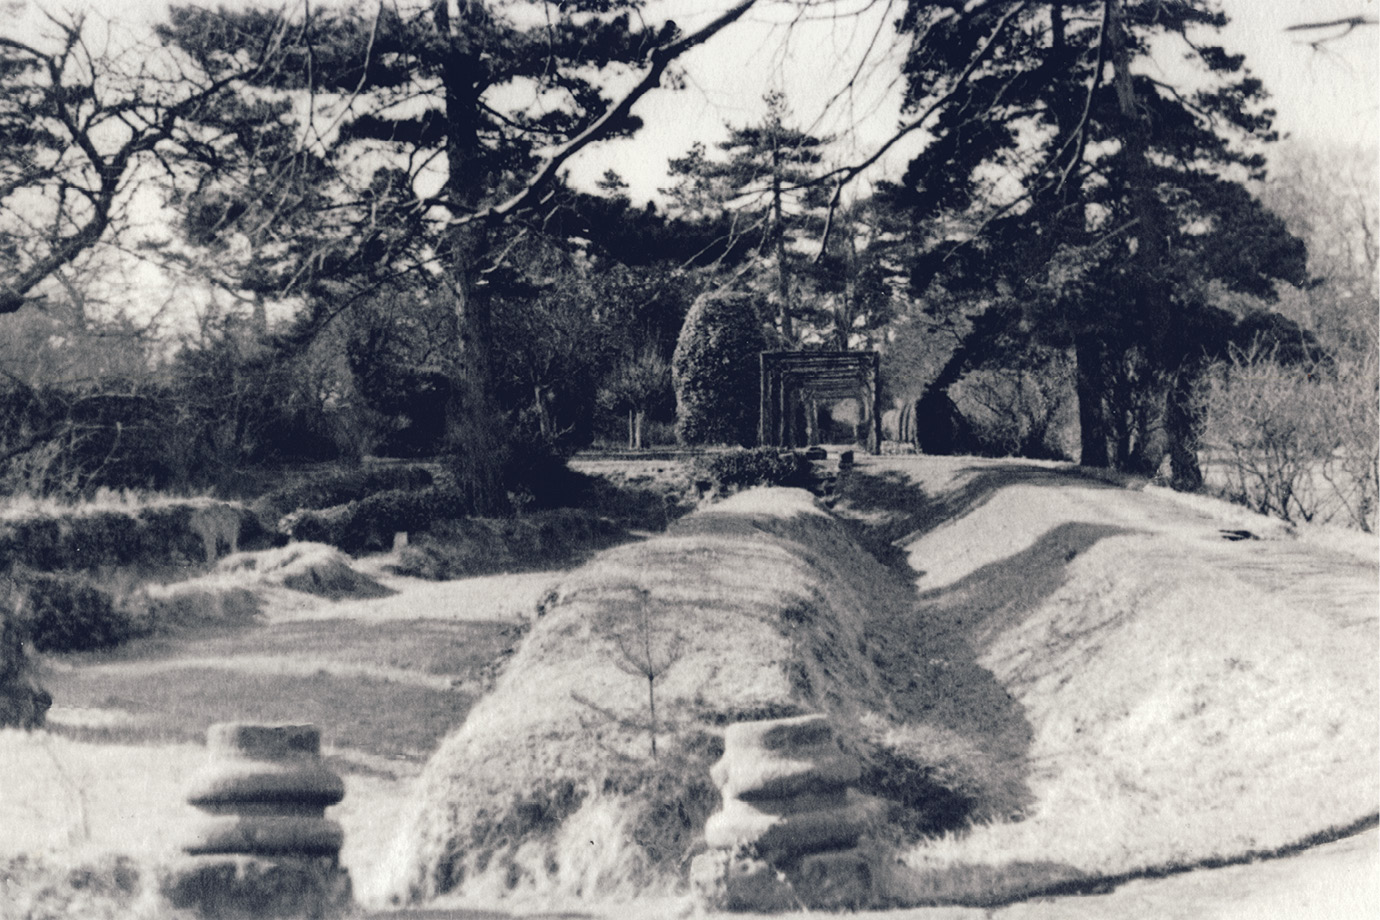 IMAGES: reproduced courtesy of Sir Andrew Lawson-Tancred